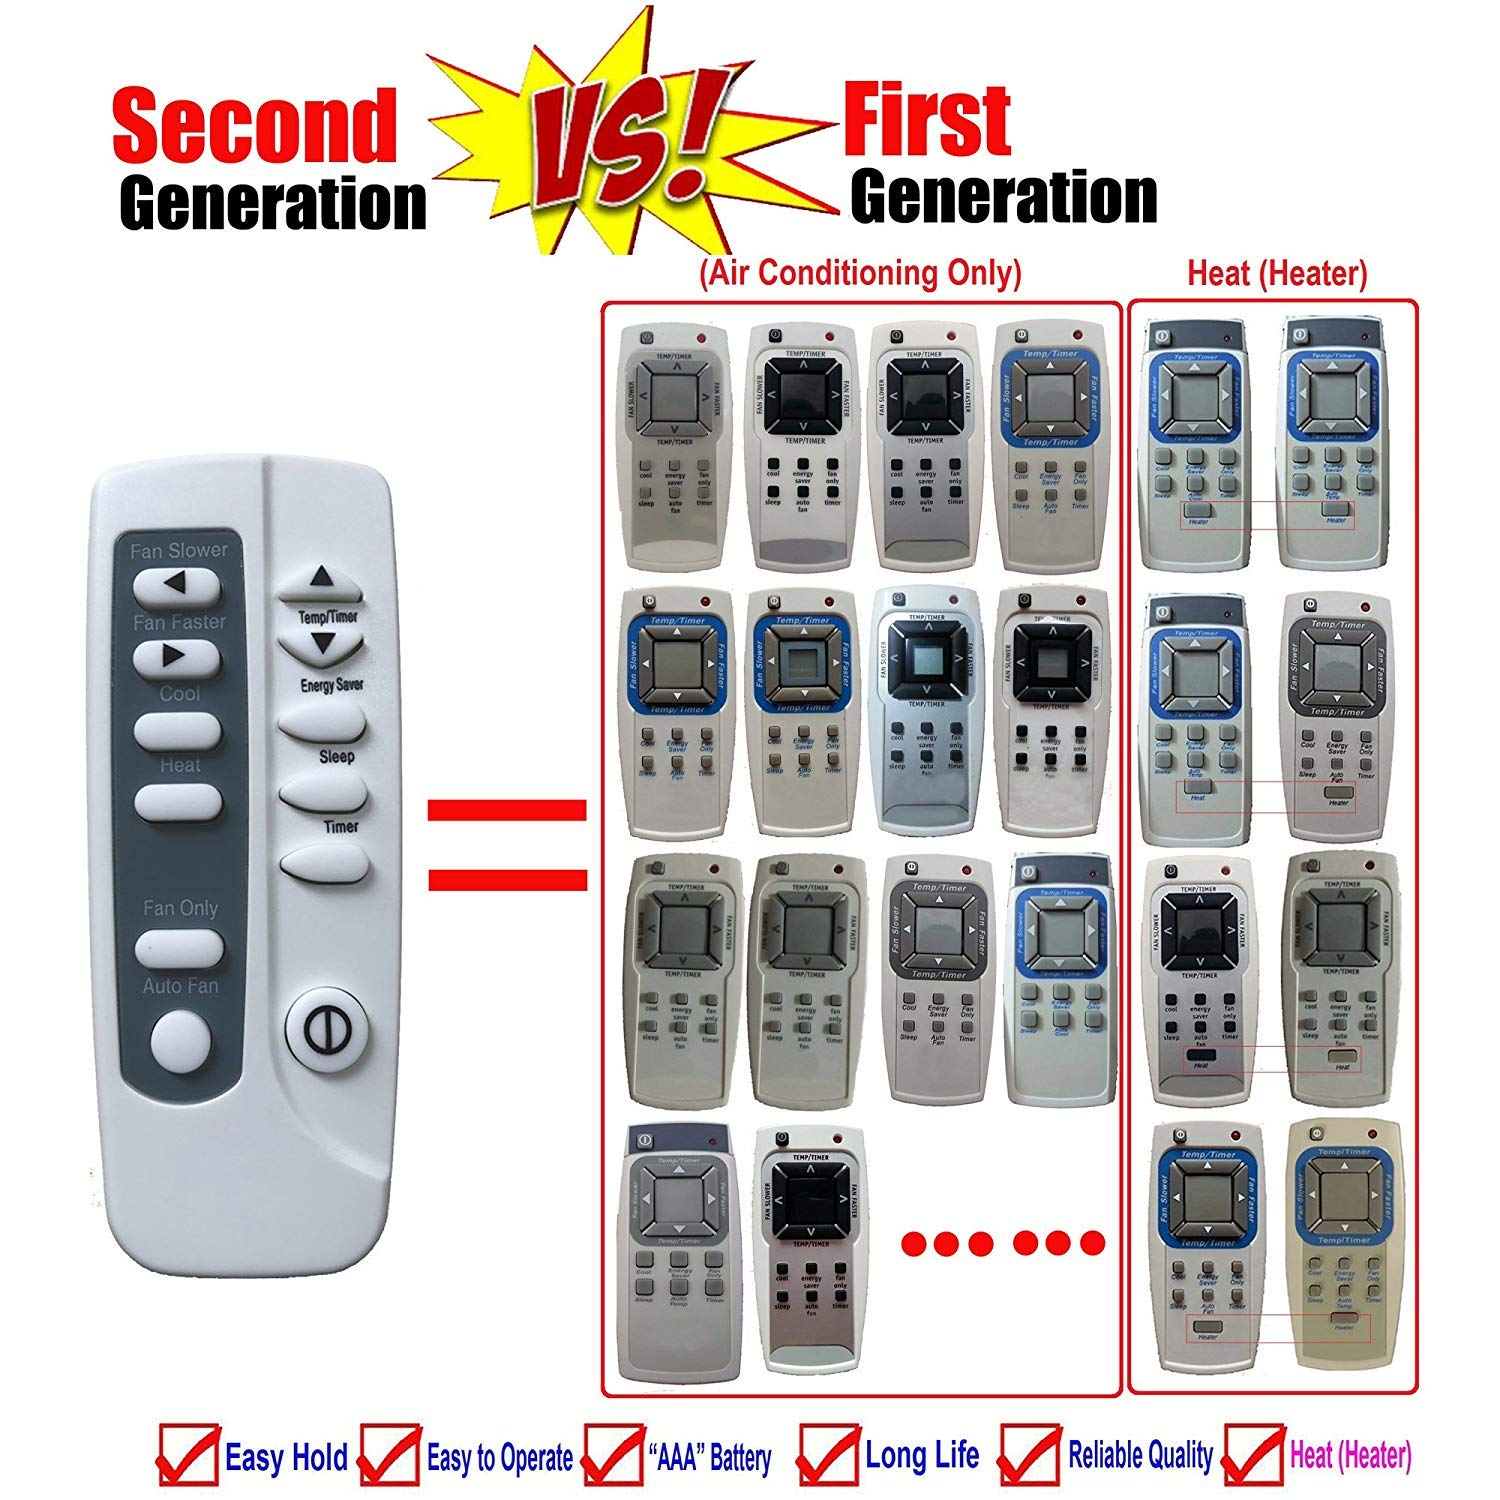 Amazon.com: Generic Replacement for Frigidaire Air Conditioner Remote  Control Listed in the Picture: Home & Kitchen